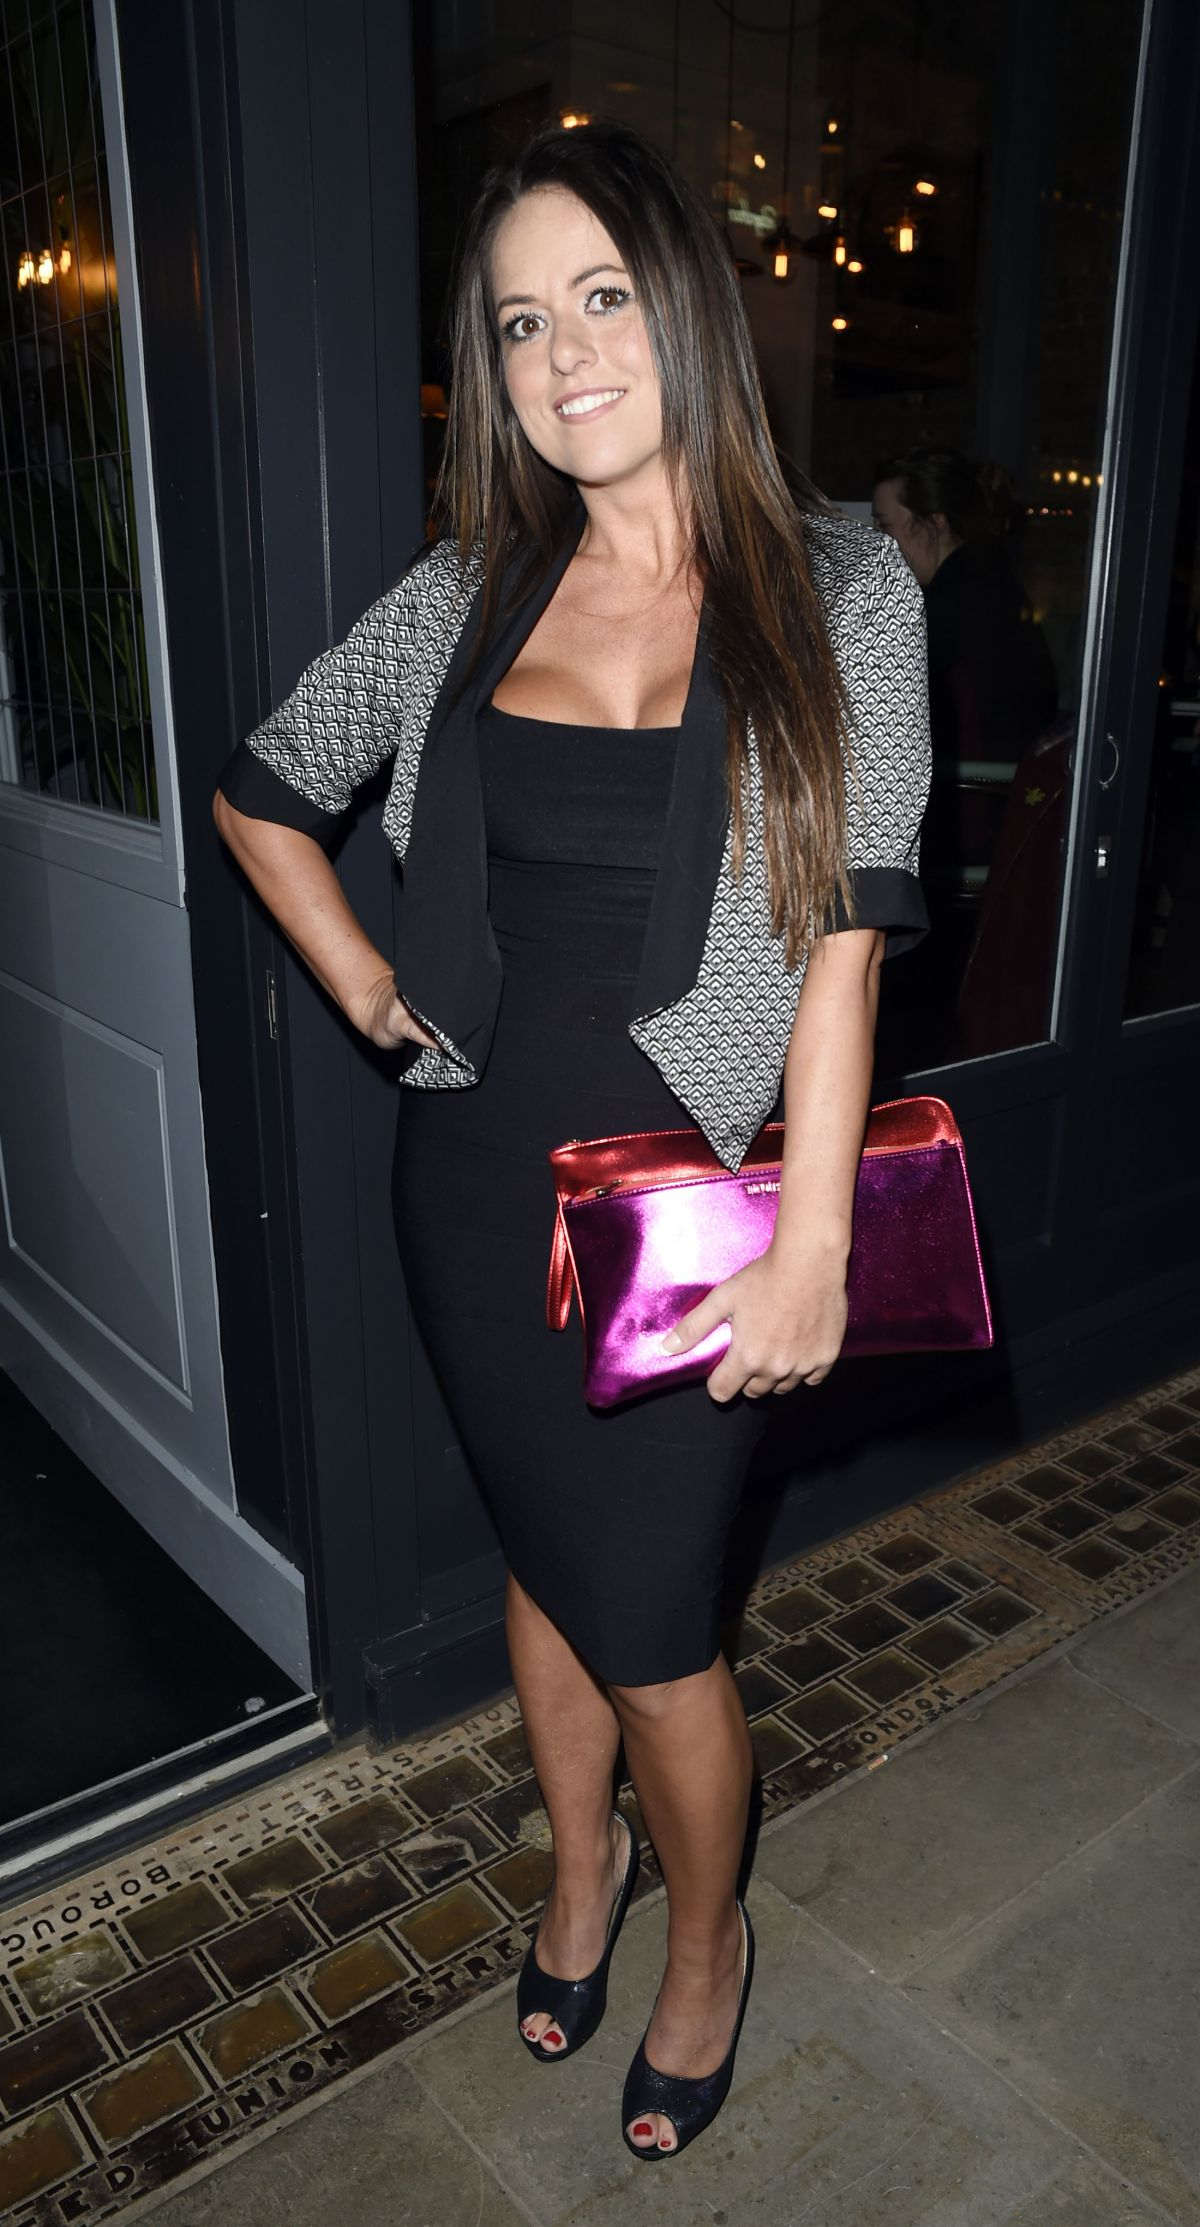 KAREN DANCZUK at Elgato Negro Tapas Restaurant in Manchester 02/29/2016